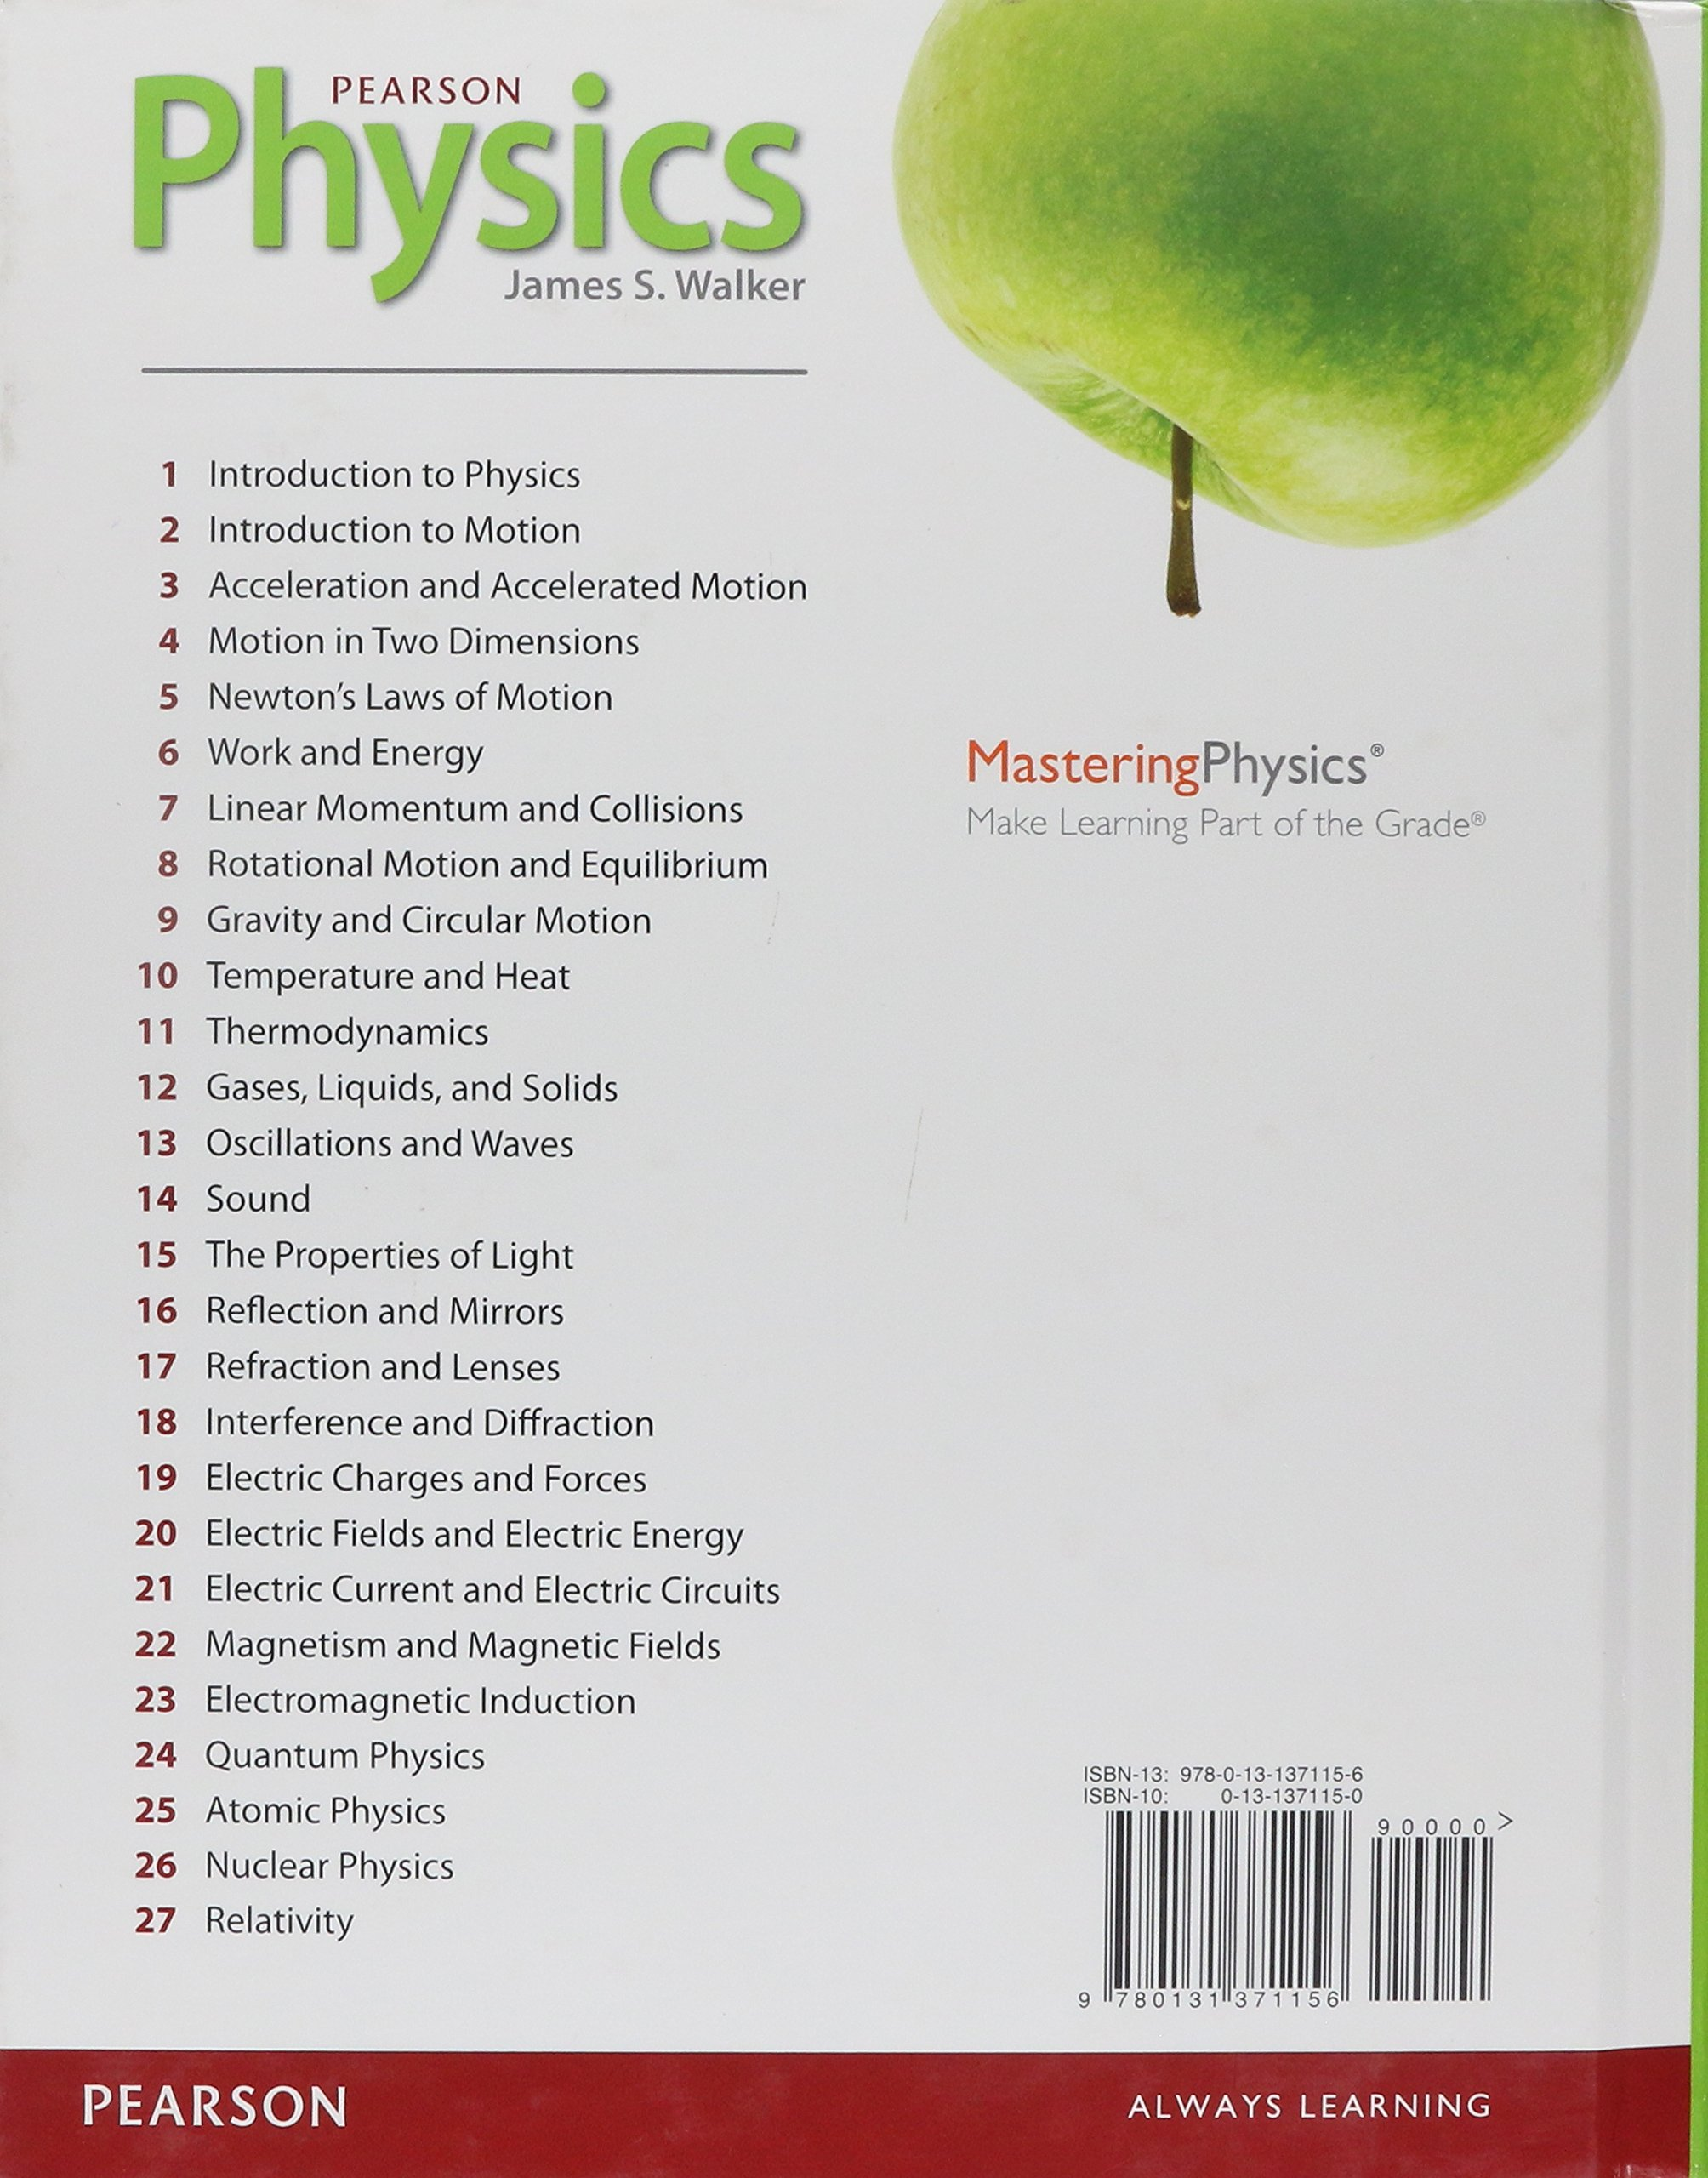 Pearson Physics Textbook Pdf